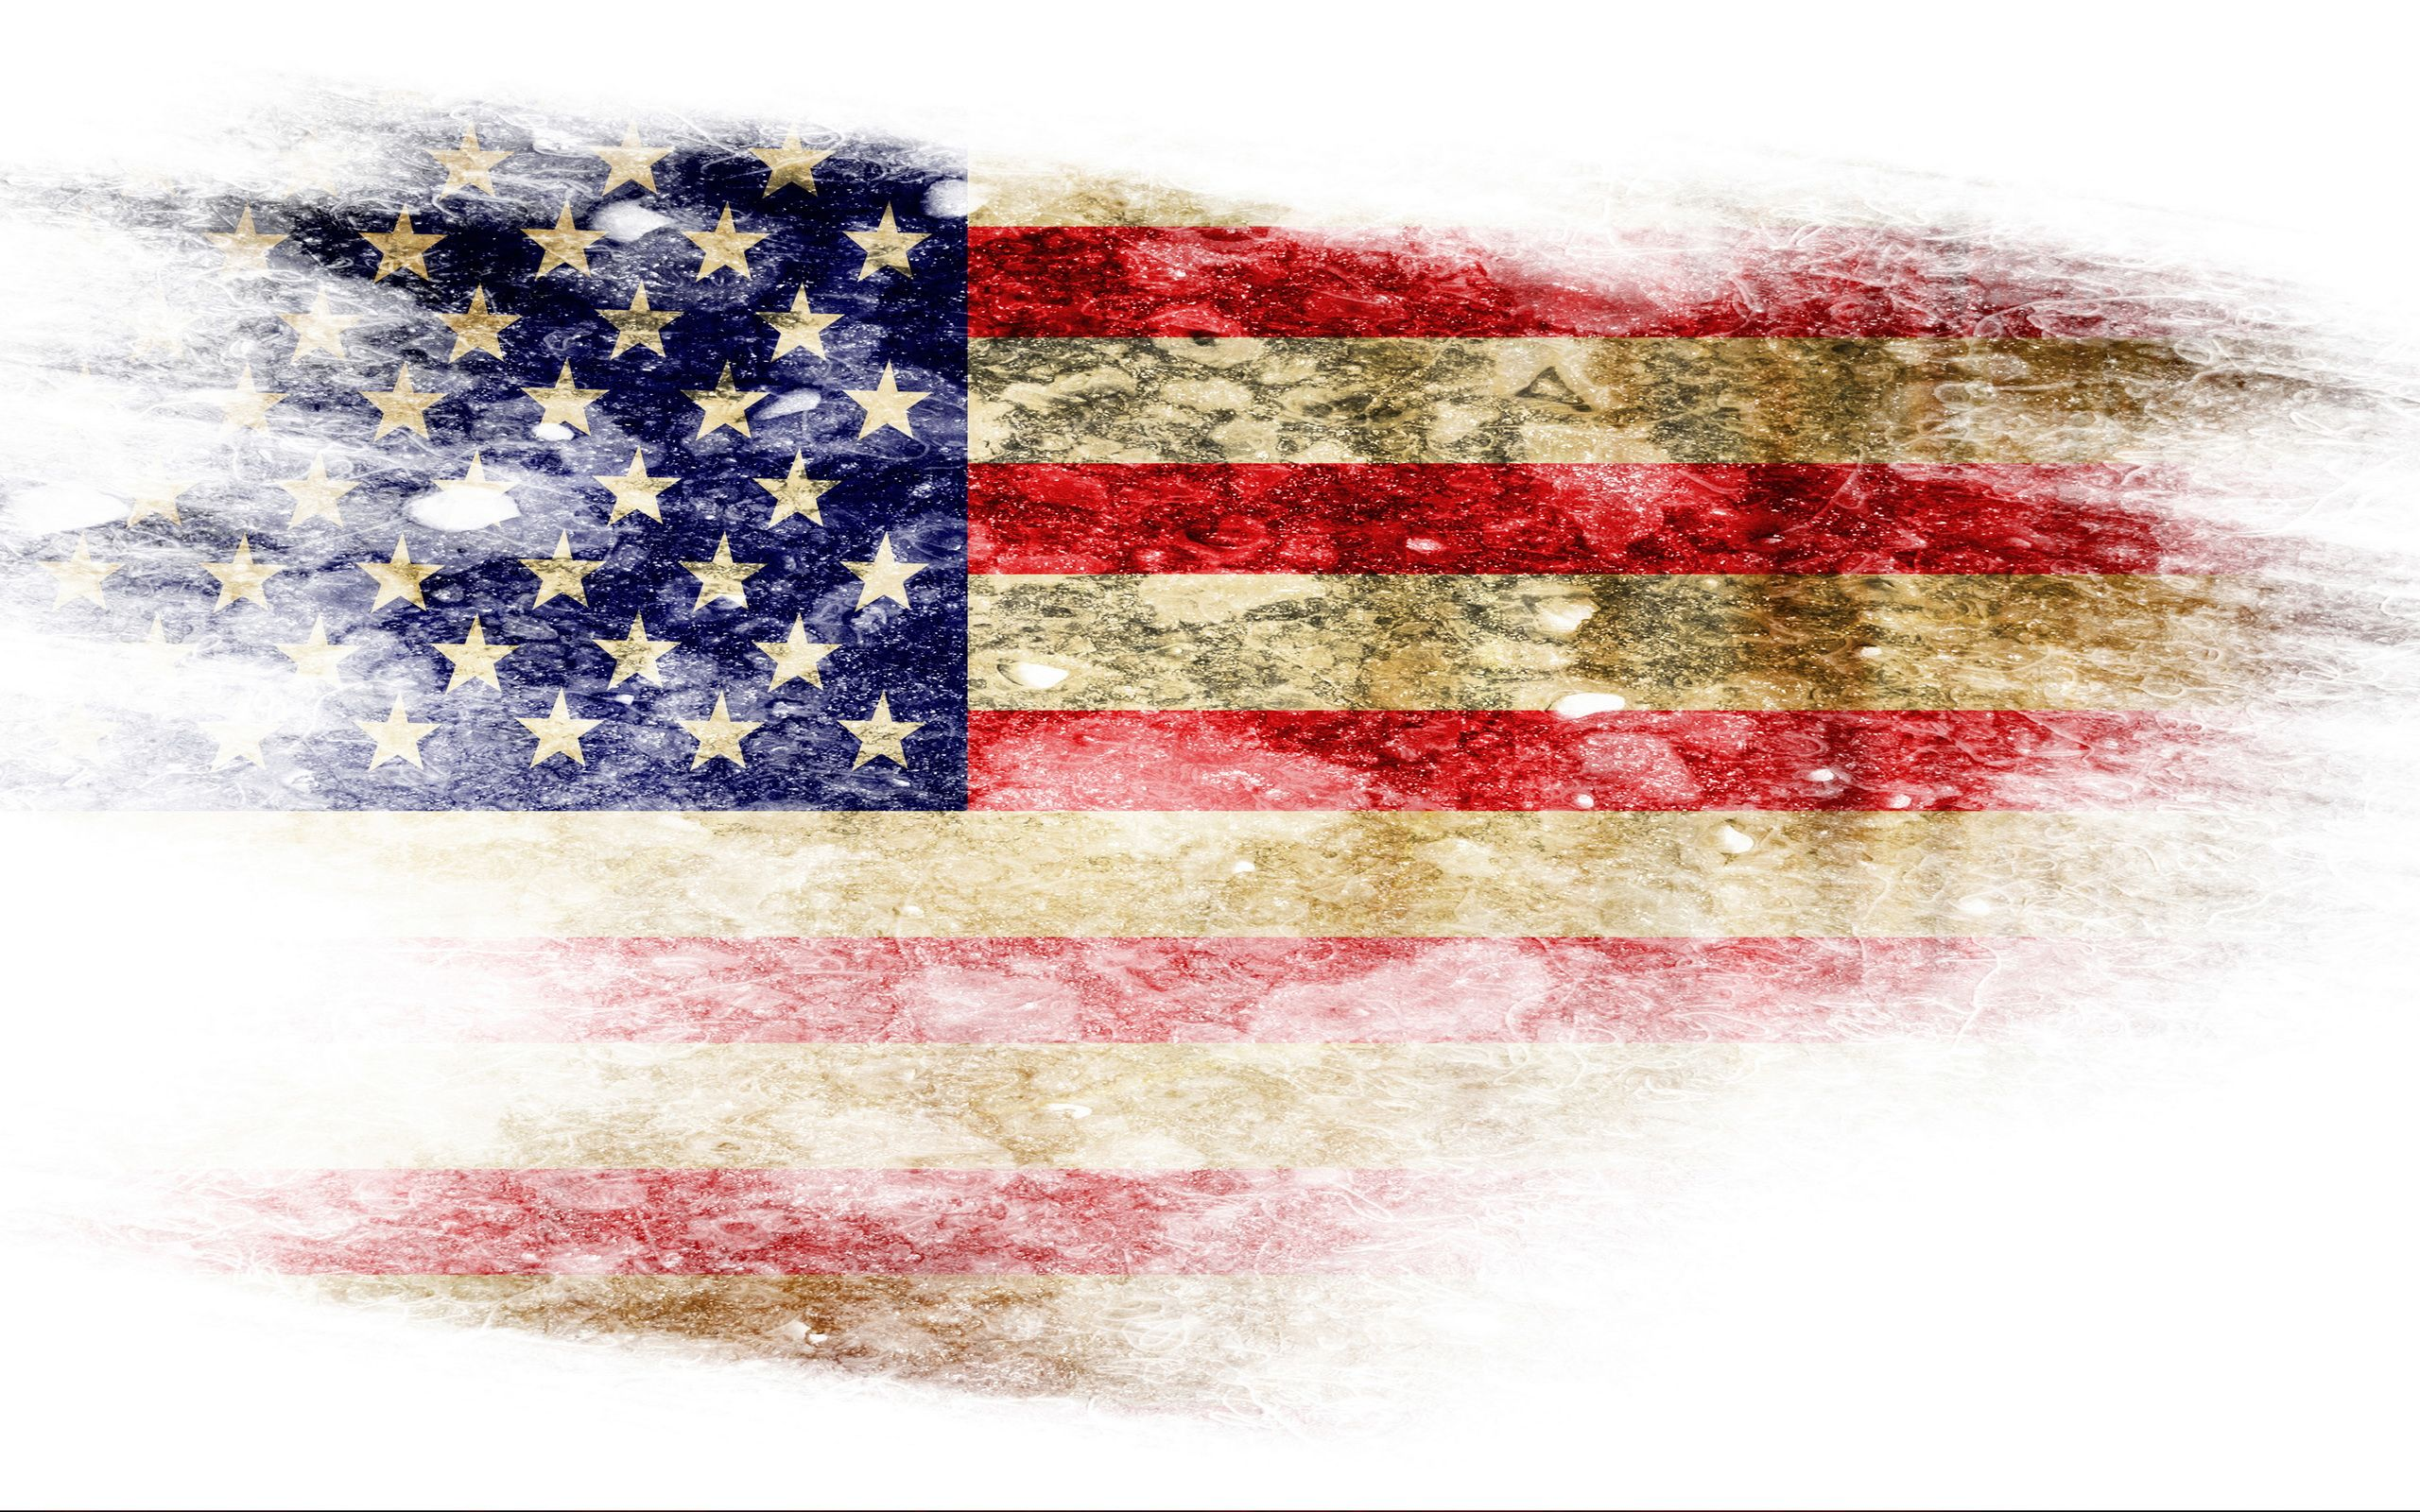 American Flag Backgrounds Wallpapers Backgrounds Images Art Photos American Flag Art American Flag Background Flag Art